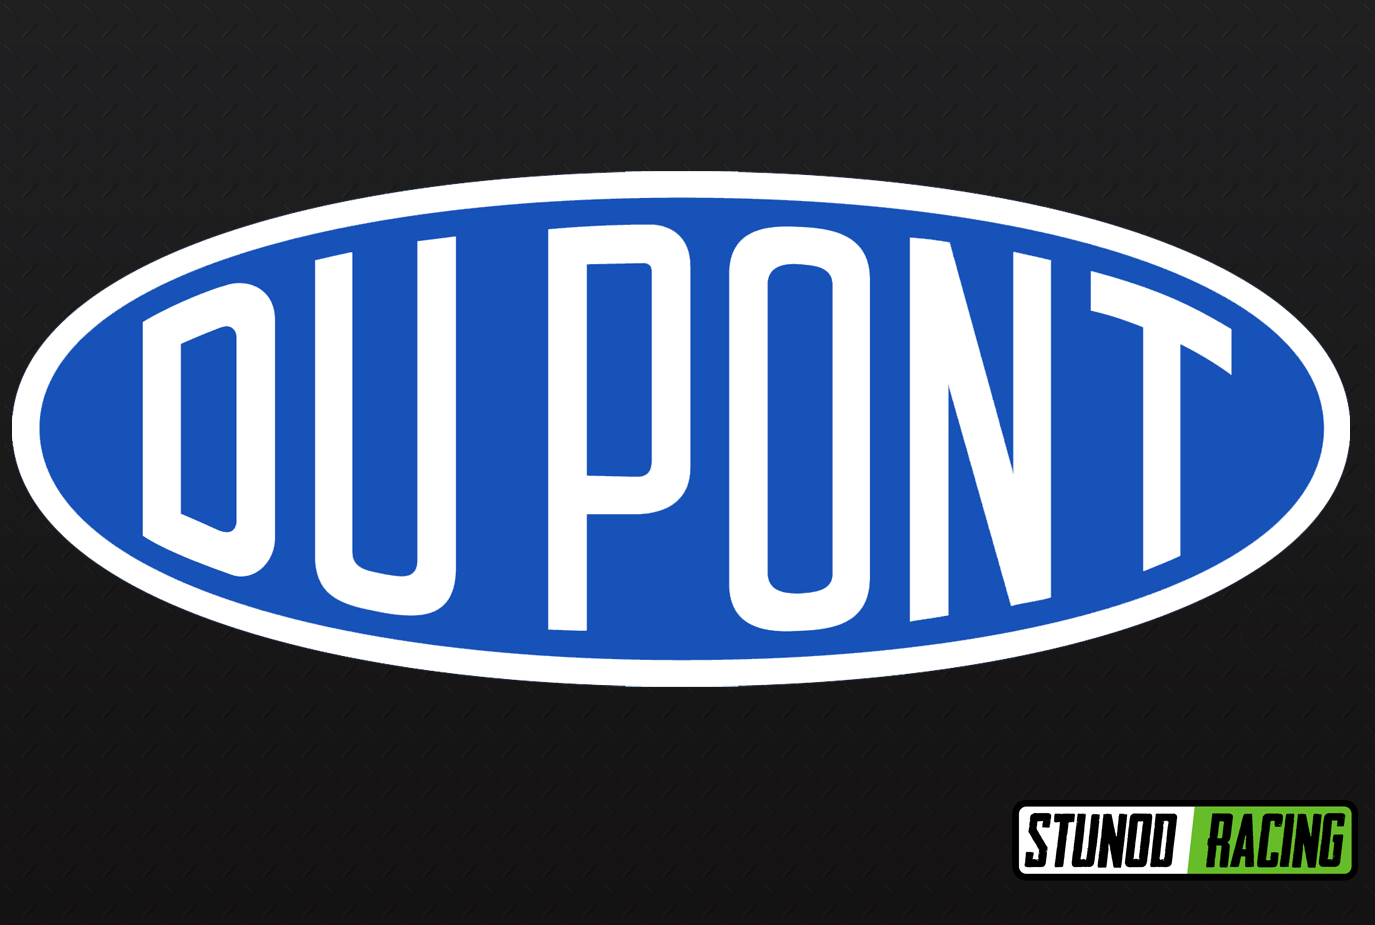 StunodRacing-DuPont-Logo-1.jpg